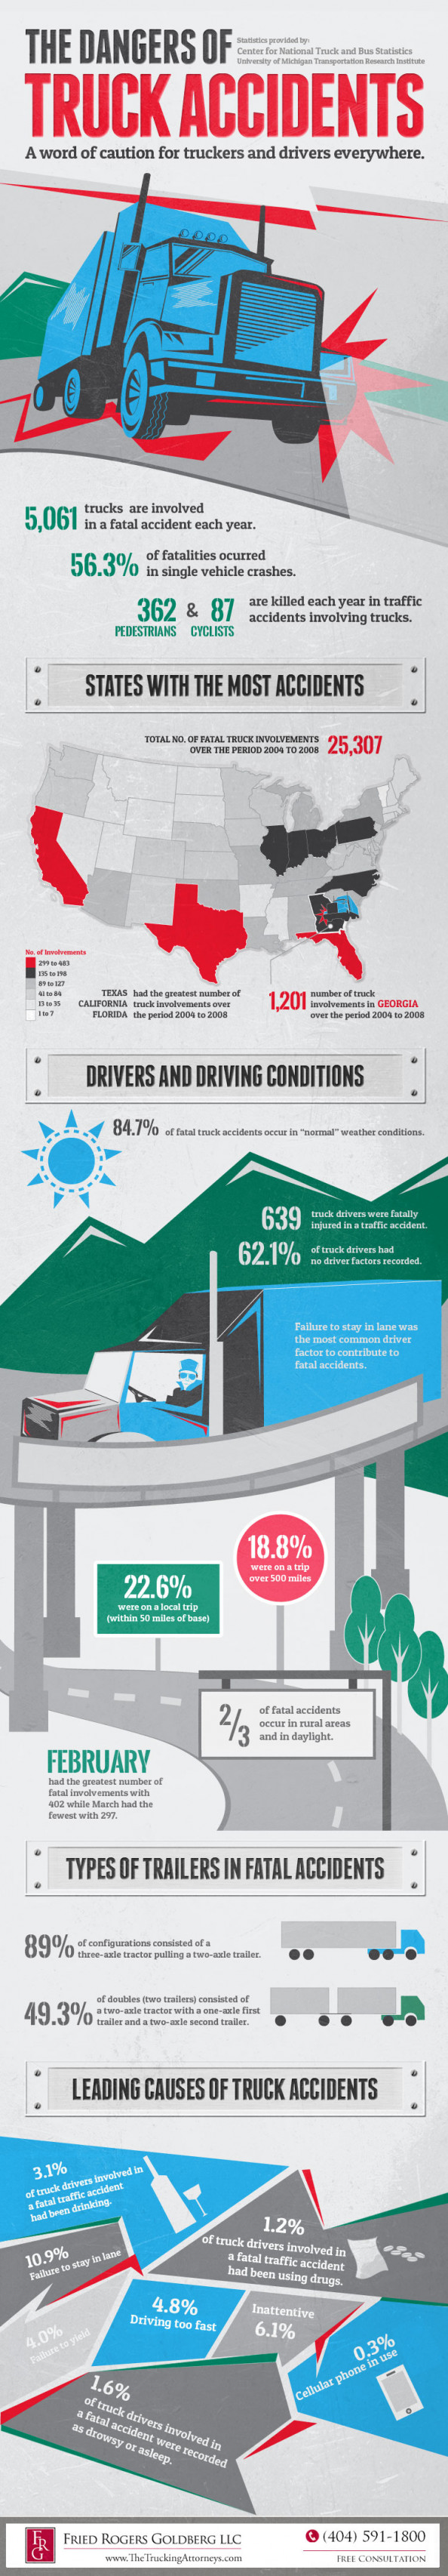 The Dangers of Truck Accidents Infographic